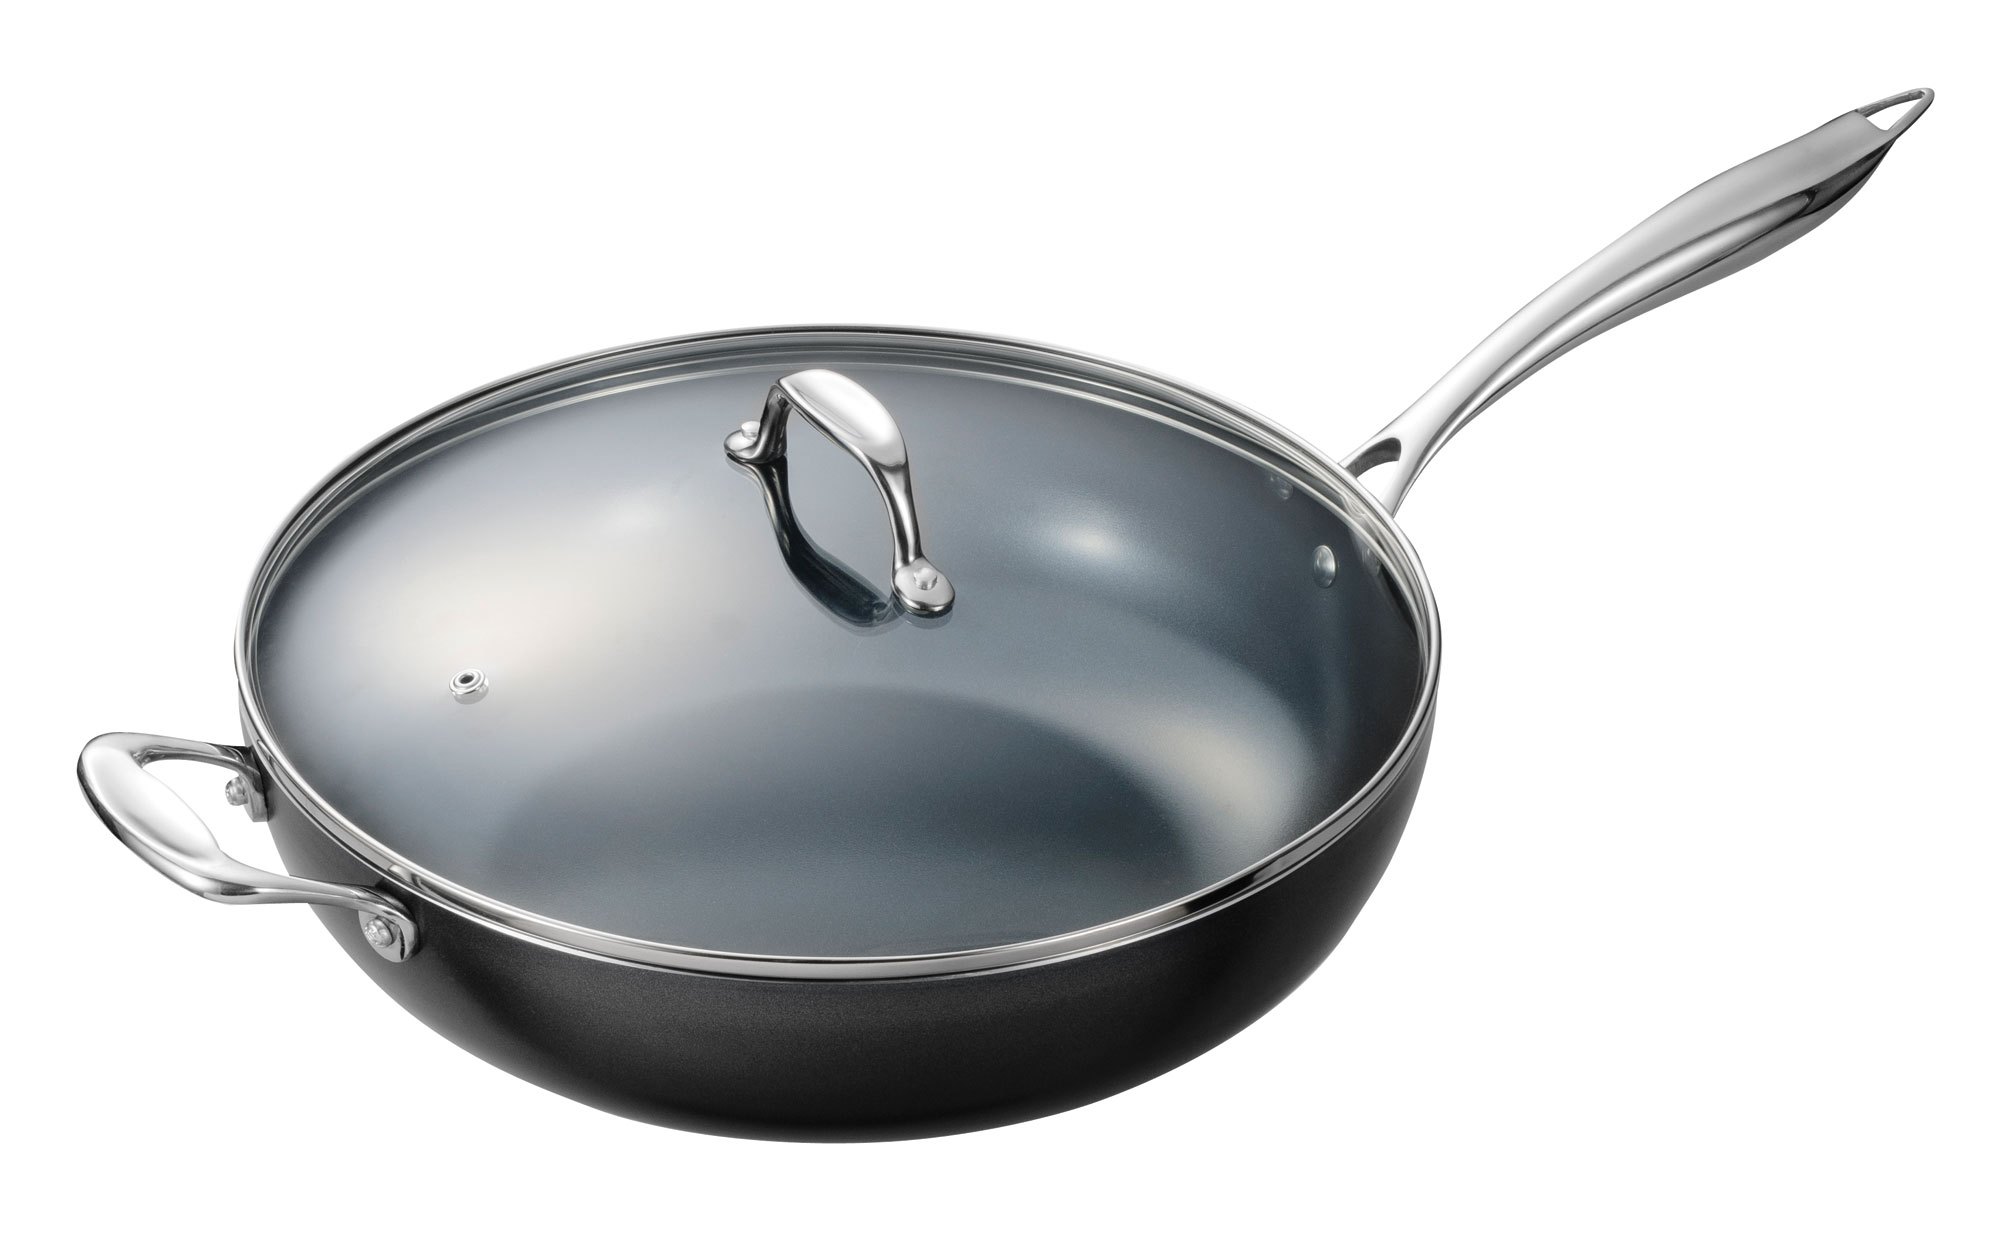 Kyocera Ceramic Nonstick Deep Skillet With Lid 12 Inch